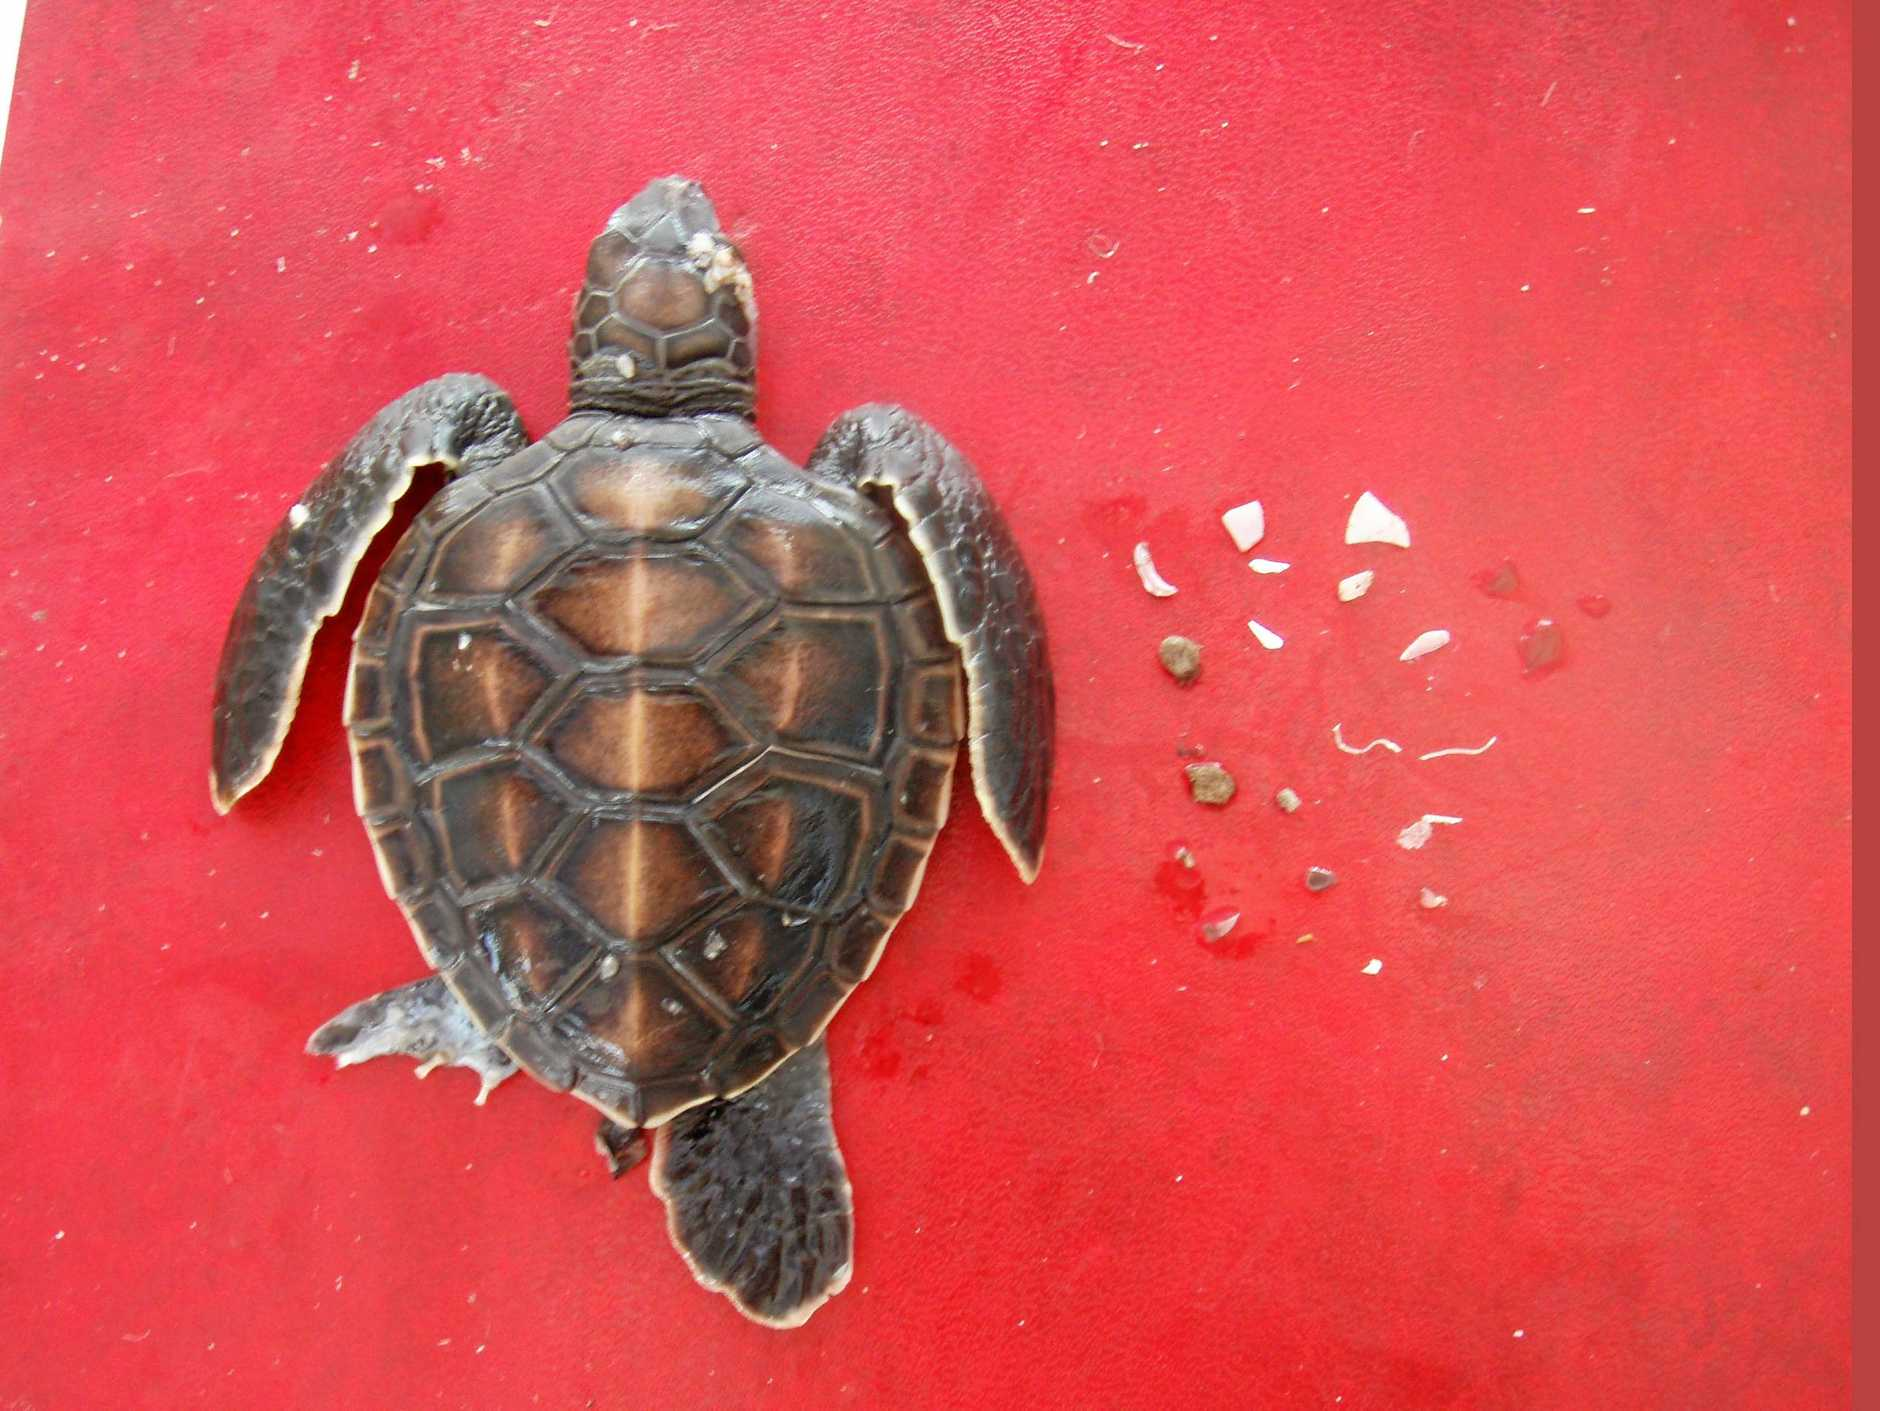 A young turtle and the marine plastics it has ingested.